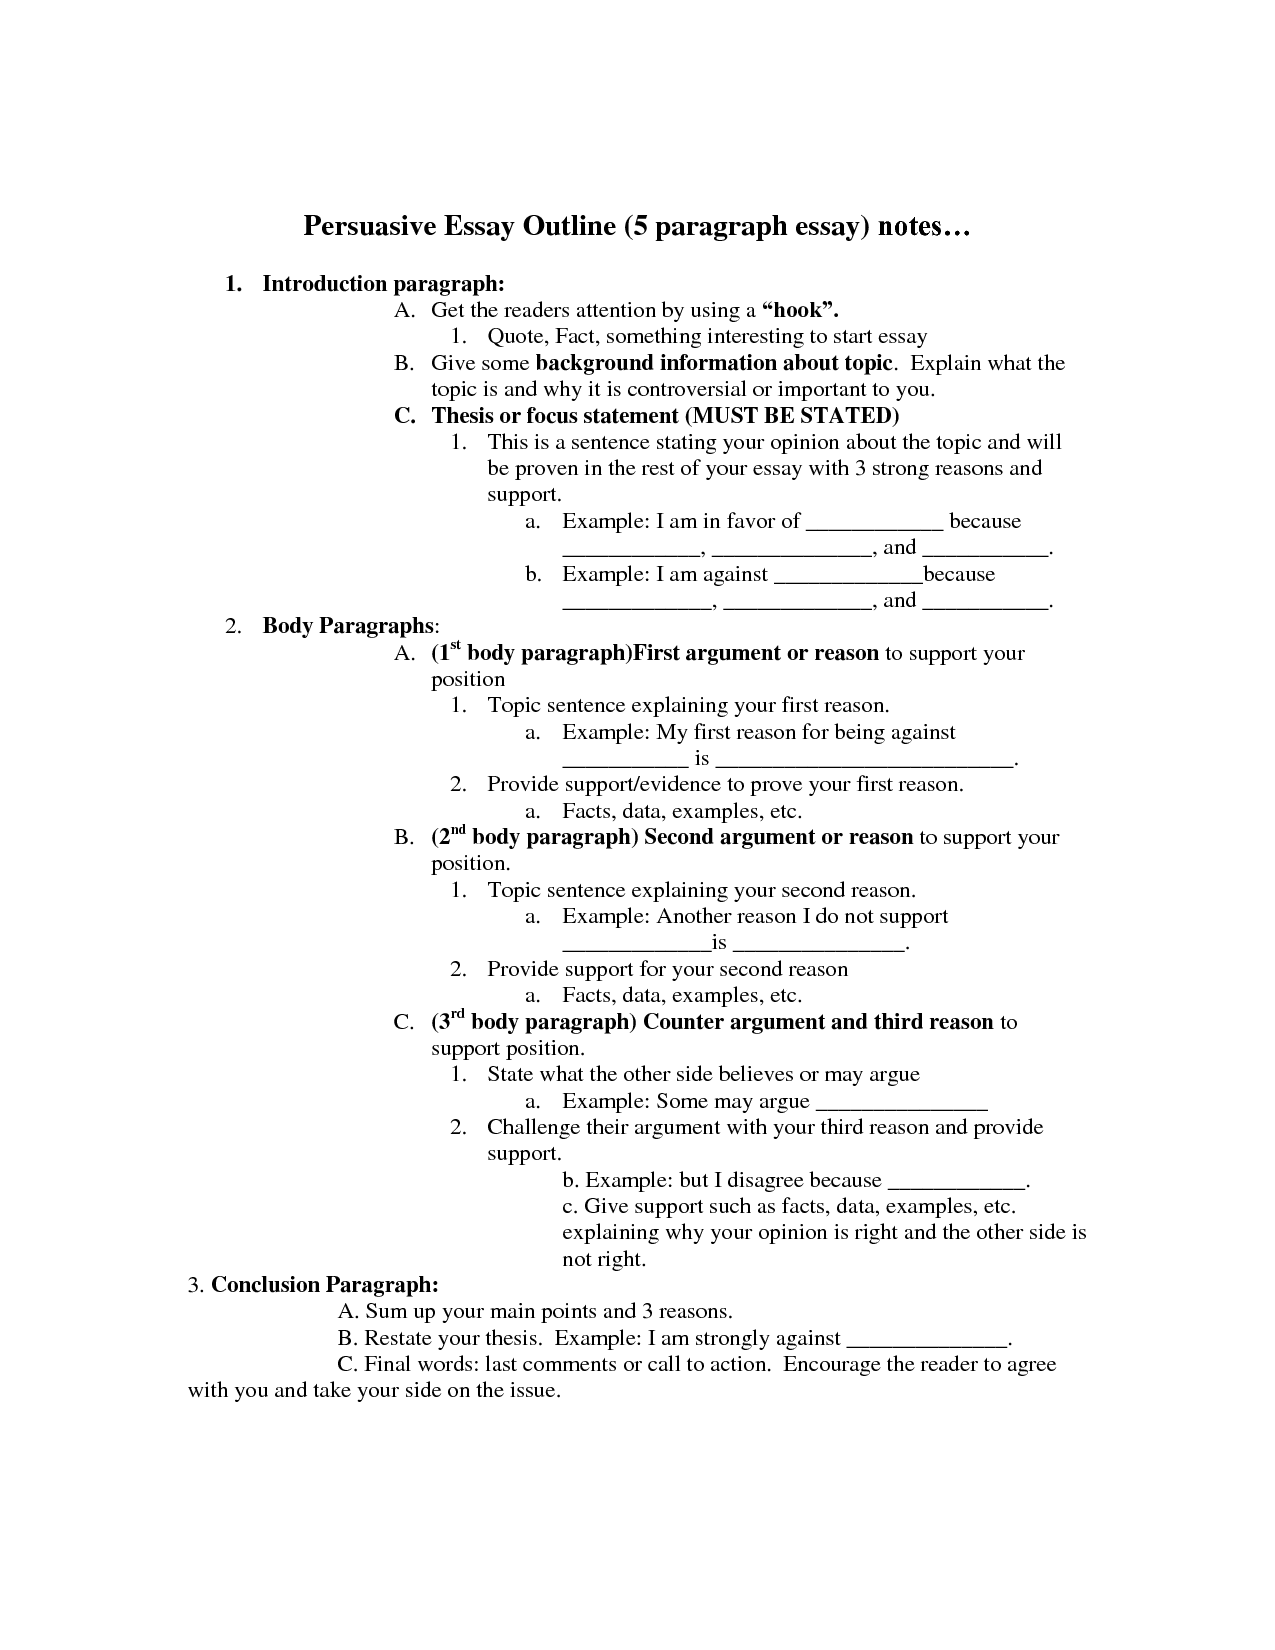 010 Outlining An Essay Best Exercise Outline Of Argumentative Classical Pattern Full